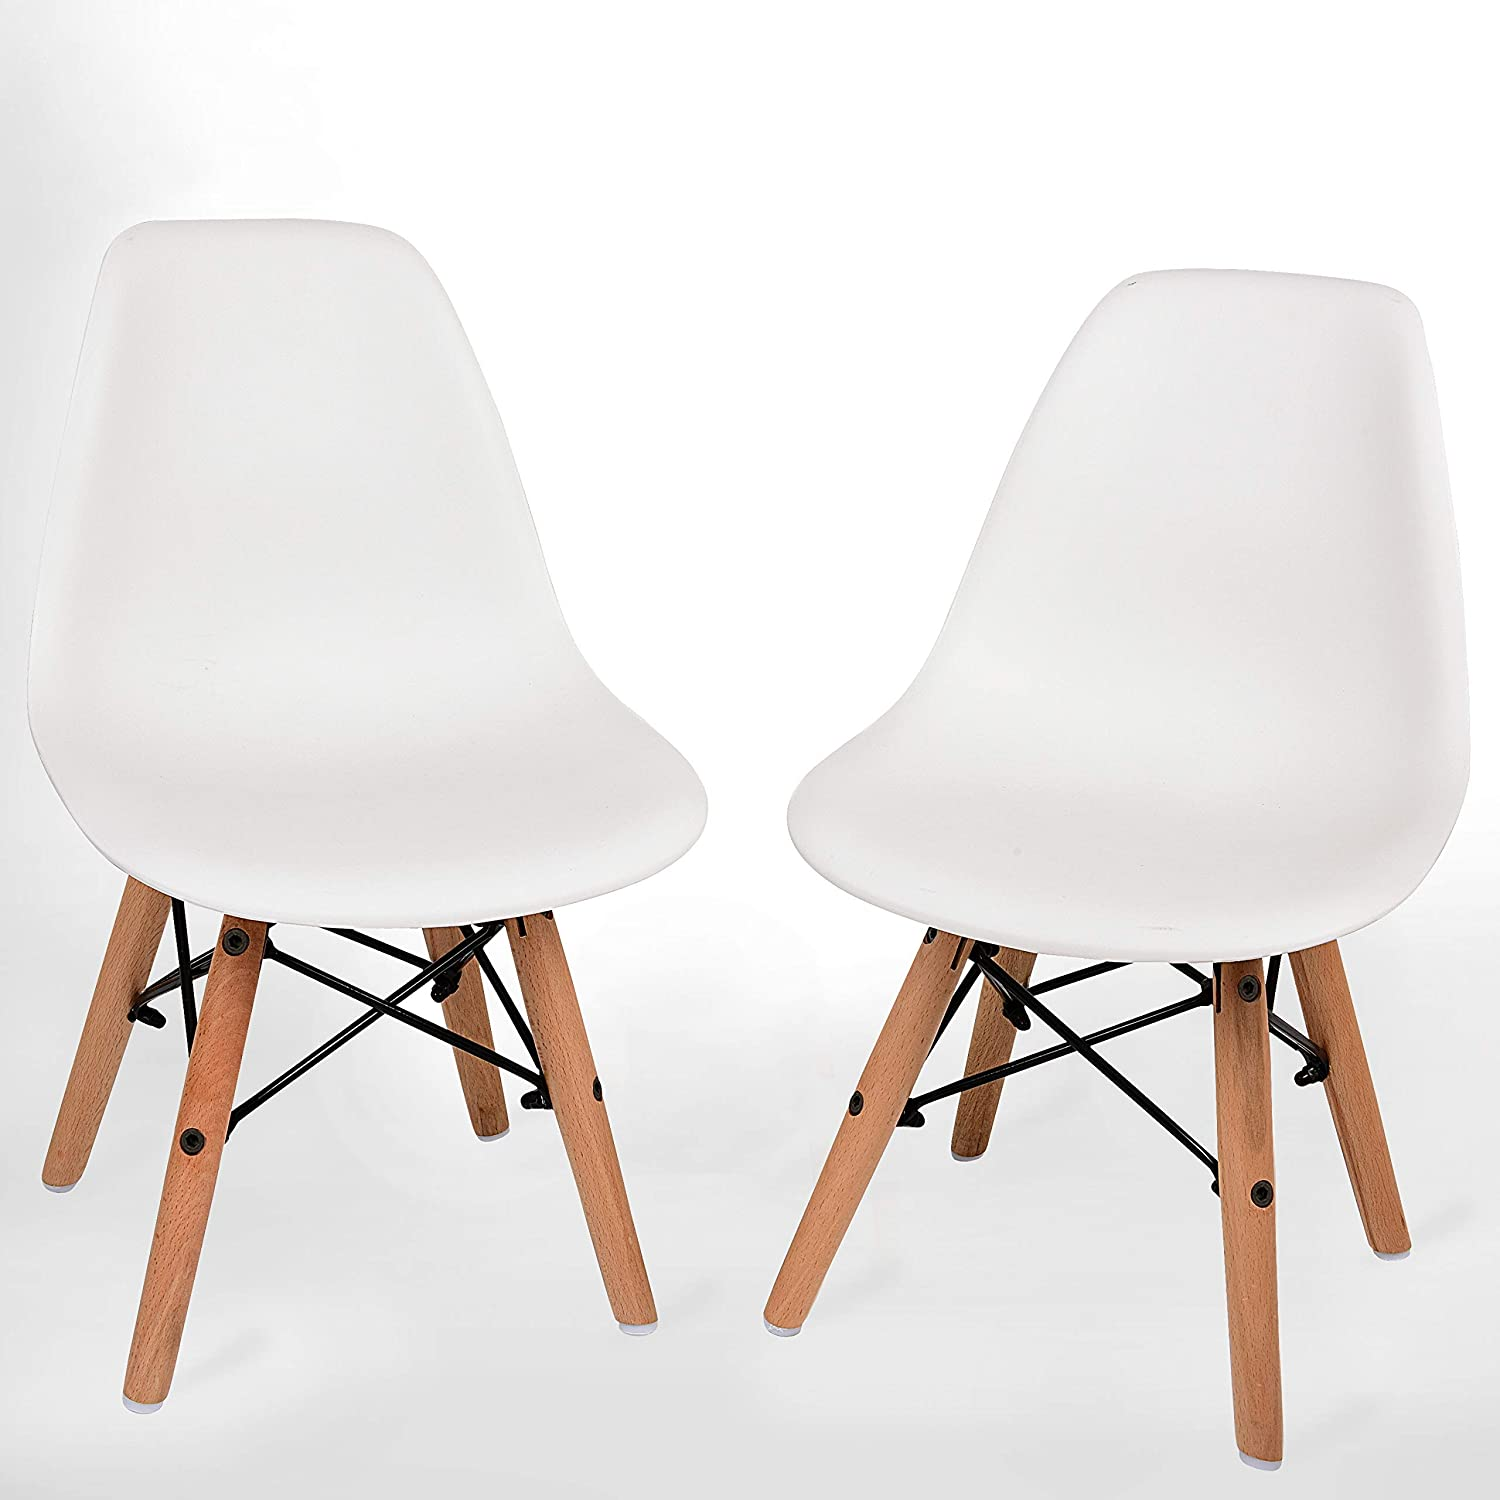 Amazon.com: UrbanMod Kids Modern Style Chairs, [Set of 2] ABS Easy